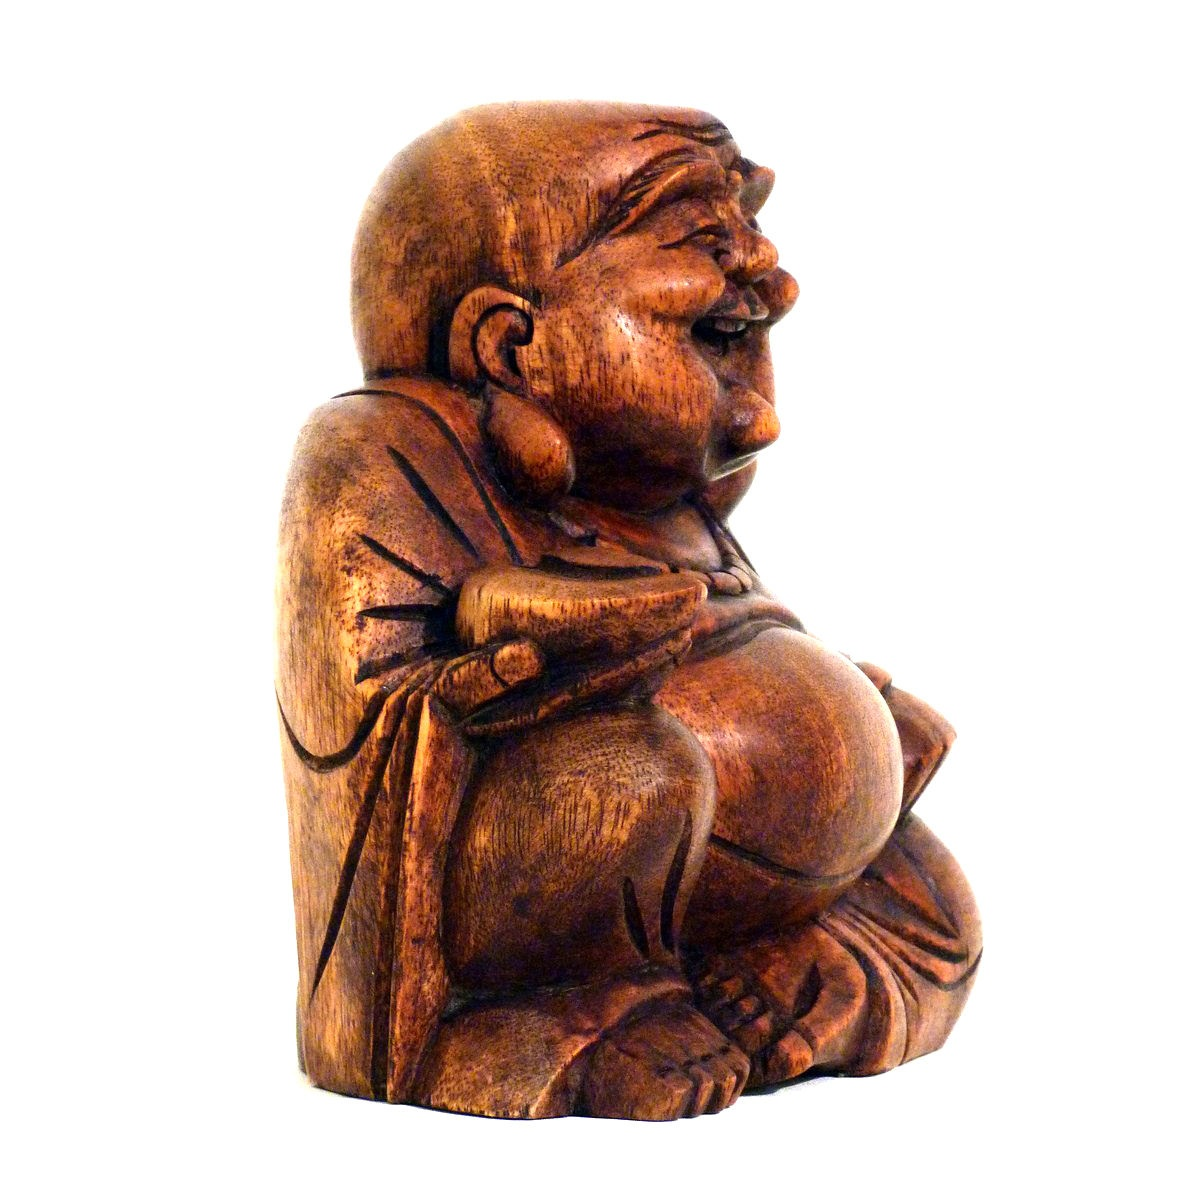 happy buddha holz figur skulptur abstrakt holzfigur afrika asia gl cksbringer ebay. Black Bedroom Furniture Sets. Home Design Ideas